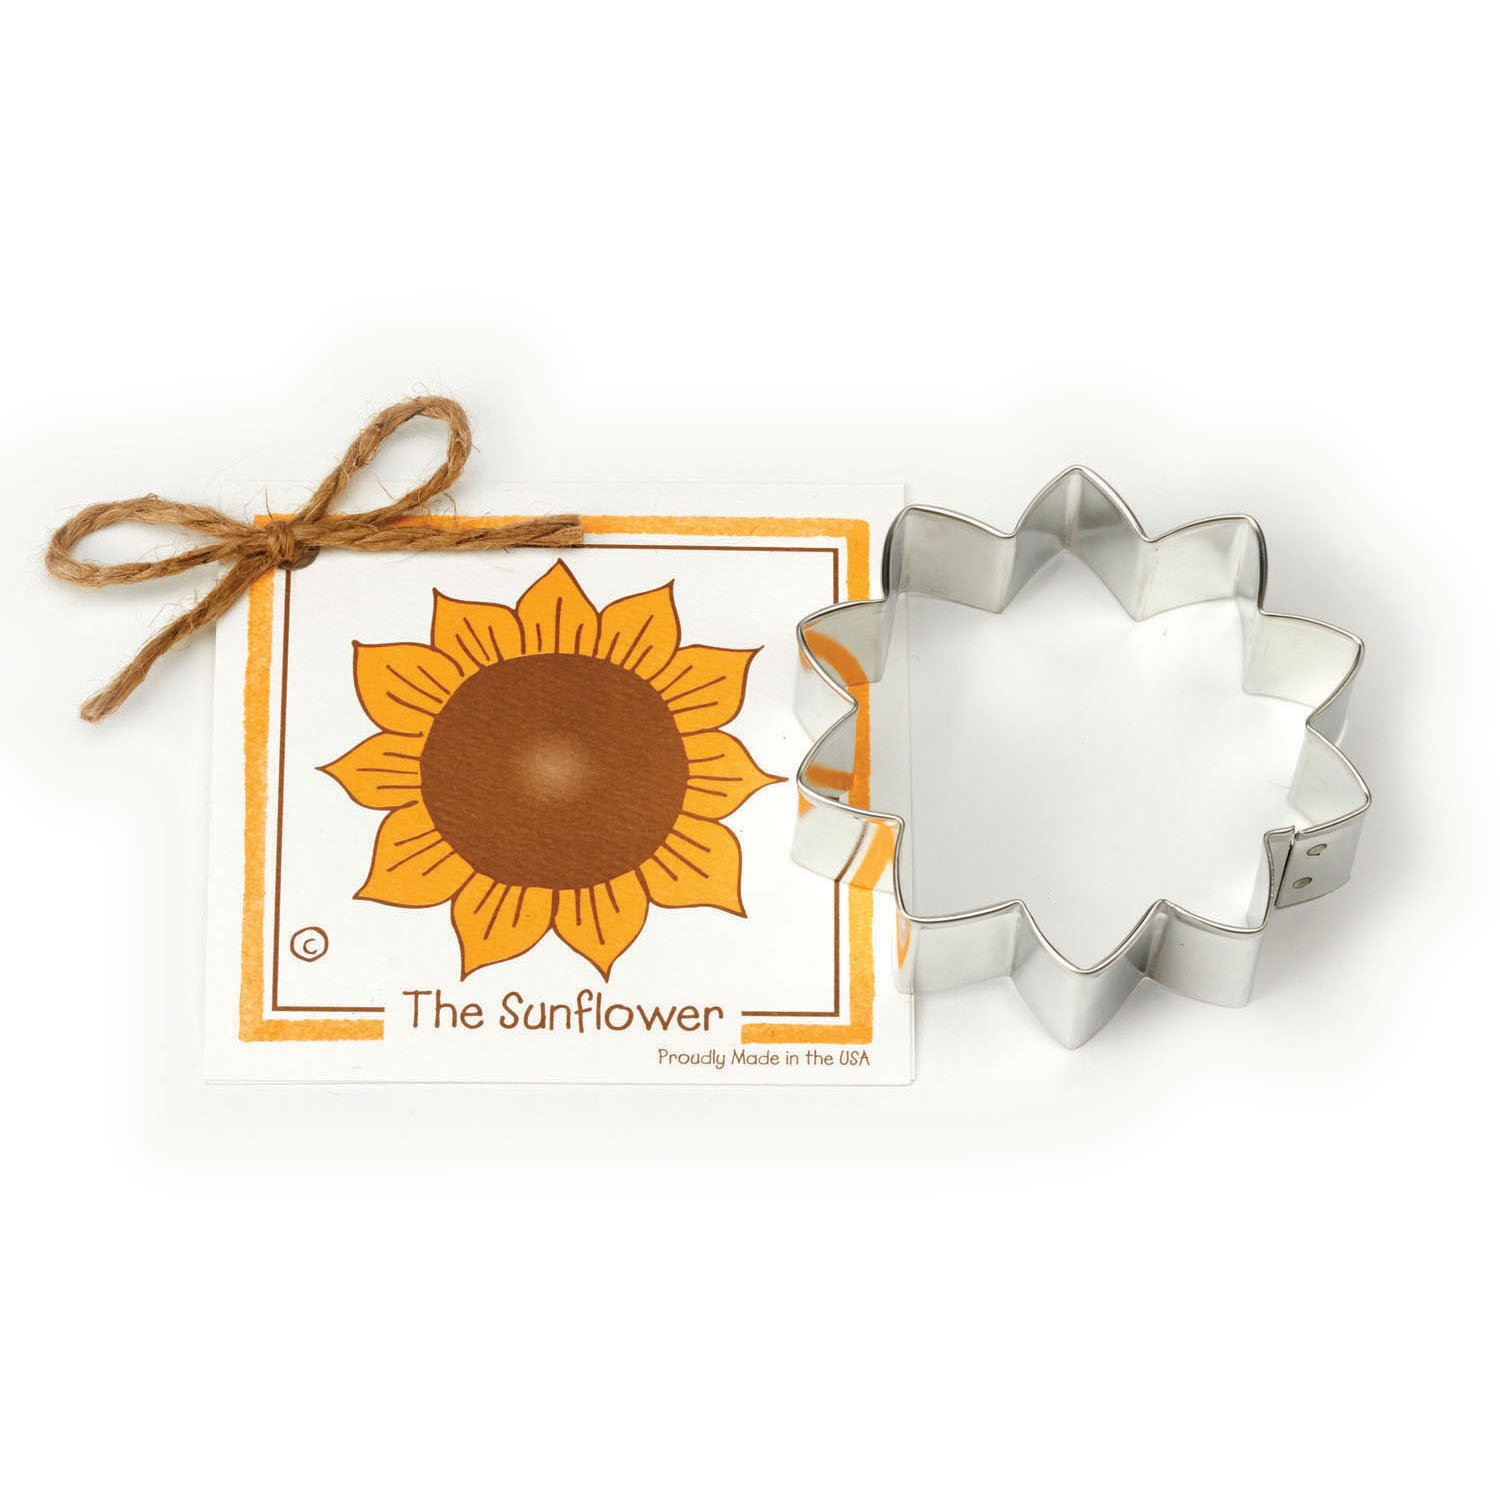 Amazon.com: Sunflower Cookie and Fondant Cutter - Ann Clark - 3.5 ...